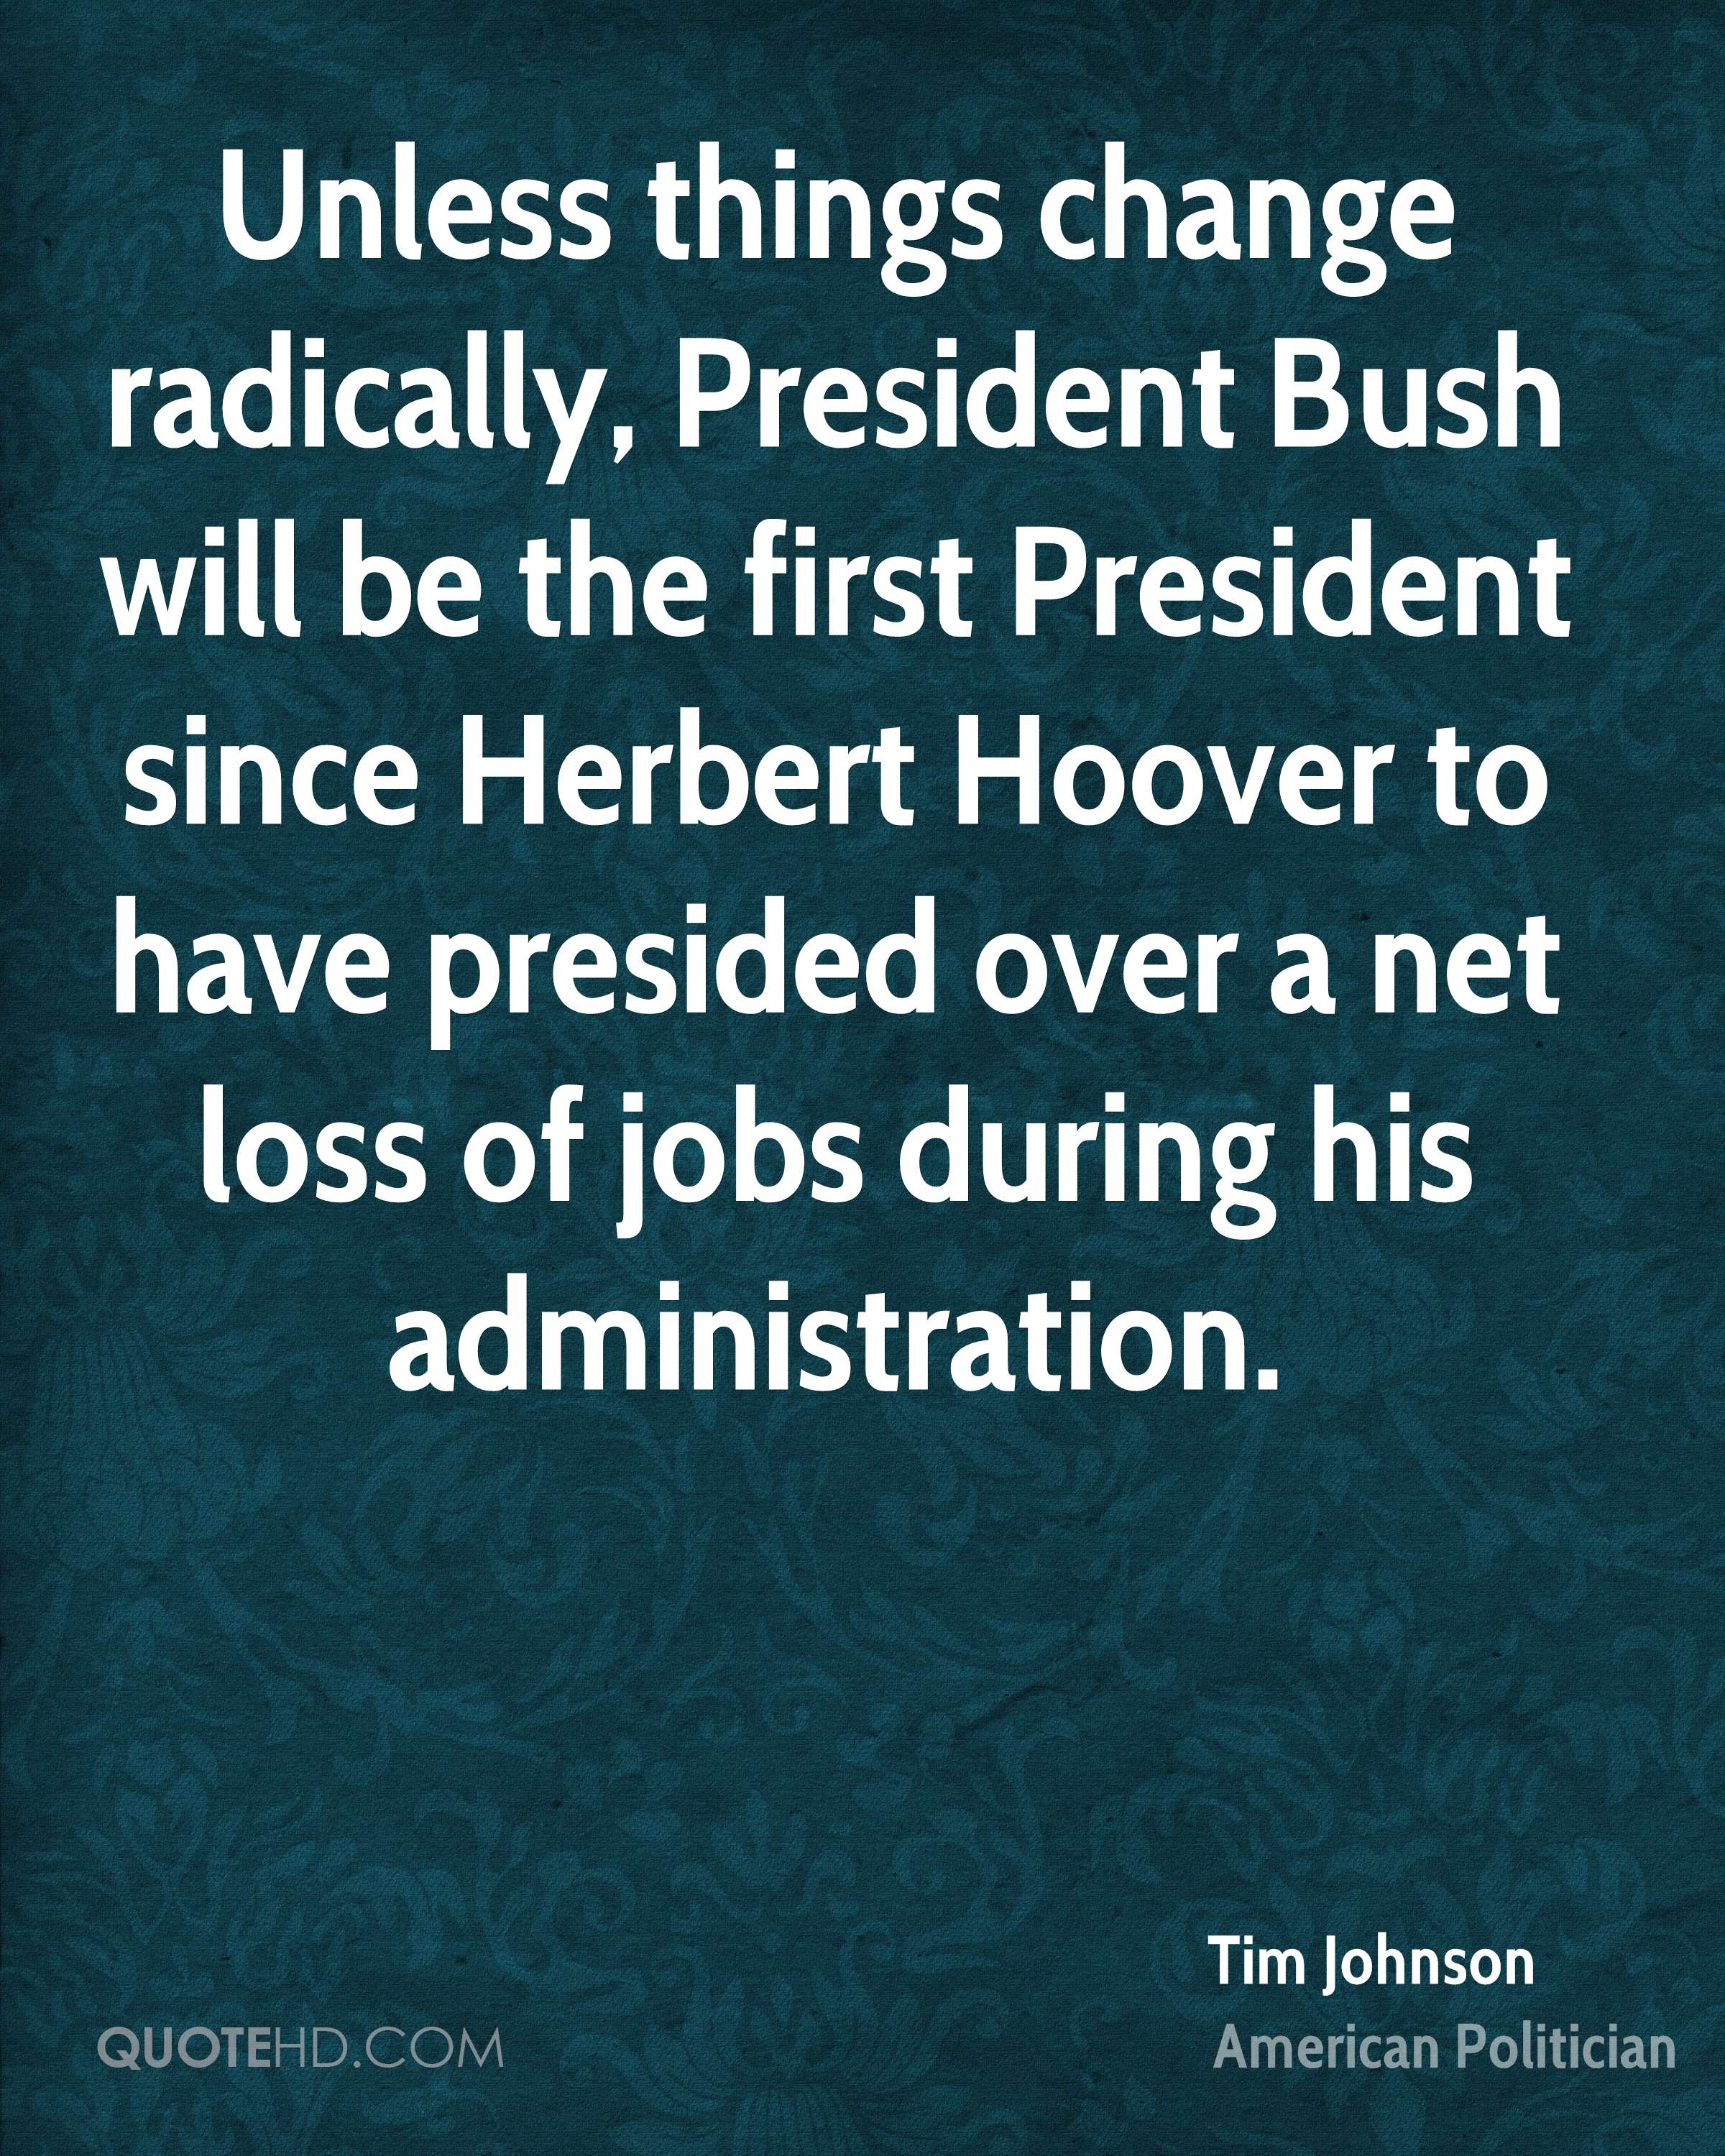 Unless things change radically, President Bush will be the first President since Herbert Hoover to have presided over a net loss of jobs during his administration.